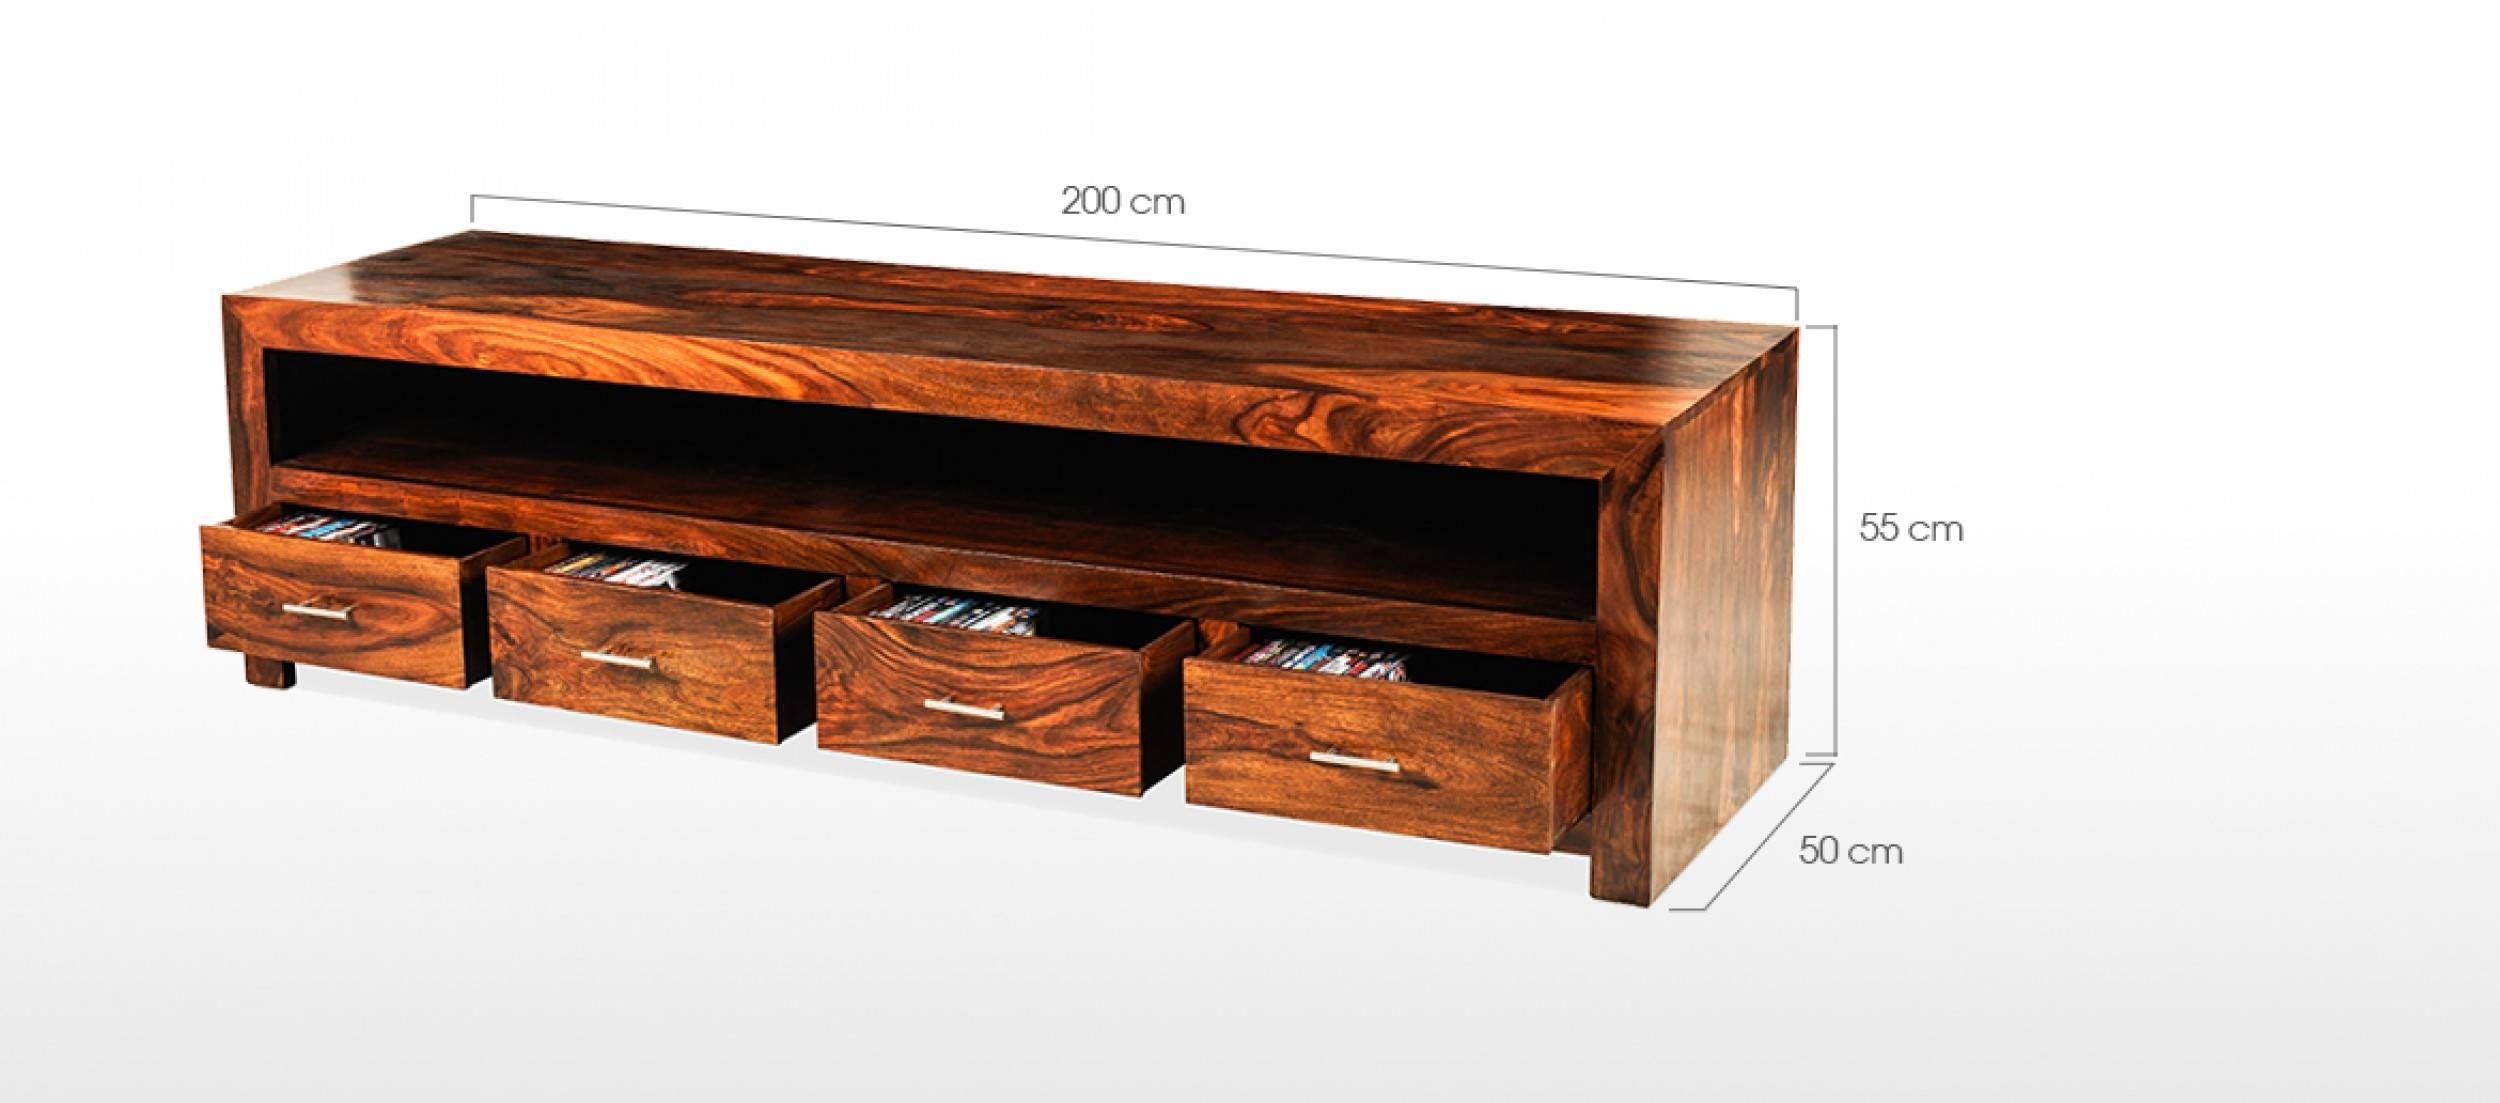 Cube Sheesham Long Plasma Tv Cabinet | Quercus Living with Plasma Tv Stands (Image 3 of 15)